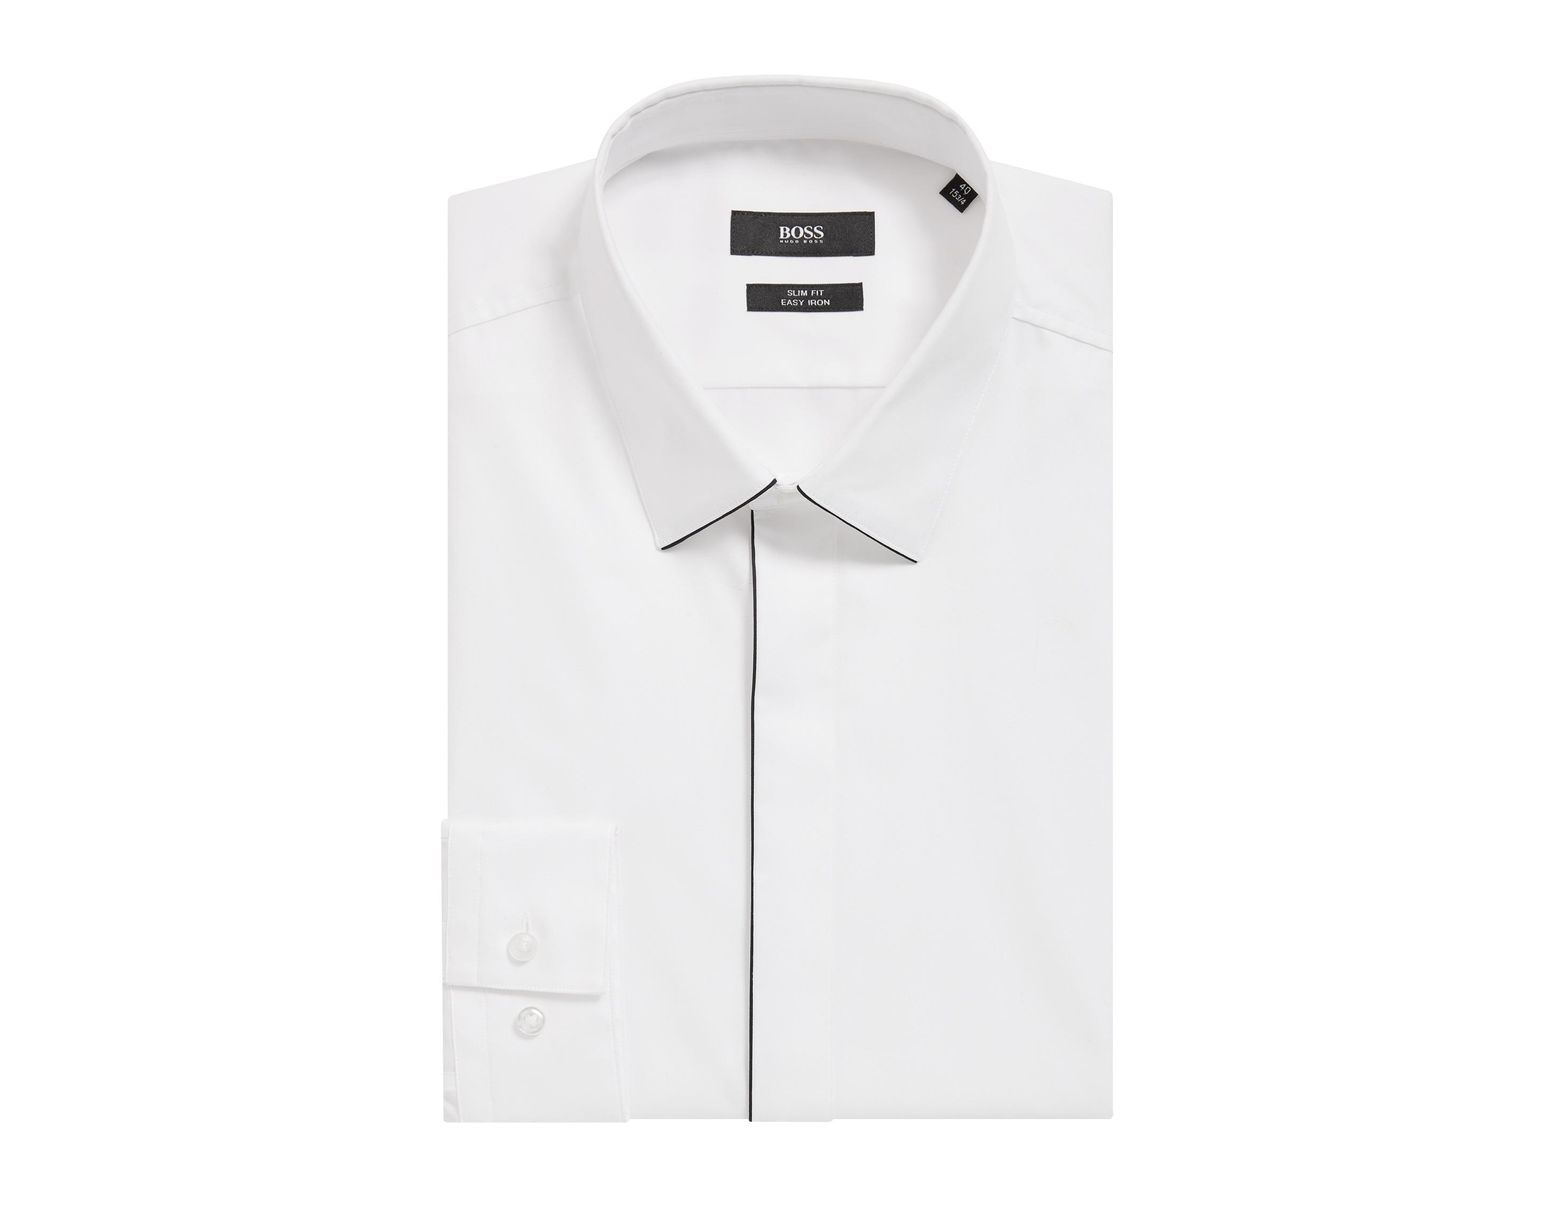 7a0c3399d BOSS Easy-iron Slim-fit Shirt With Contrast Piping in White for Men - Save  30% - Lyst